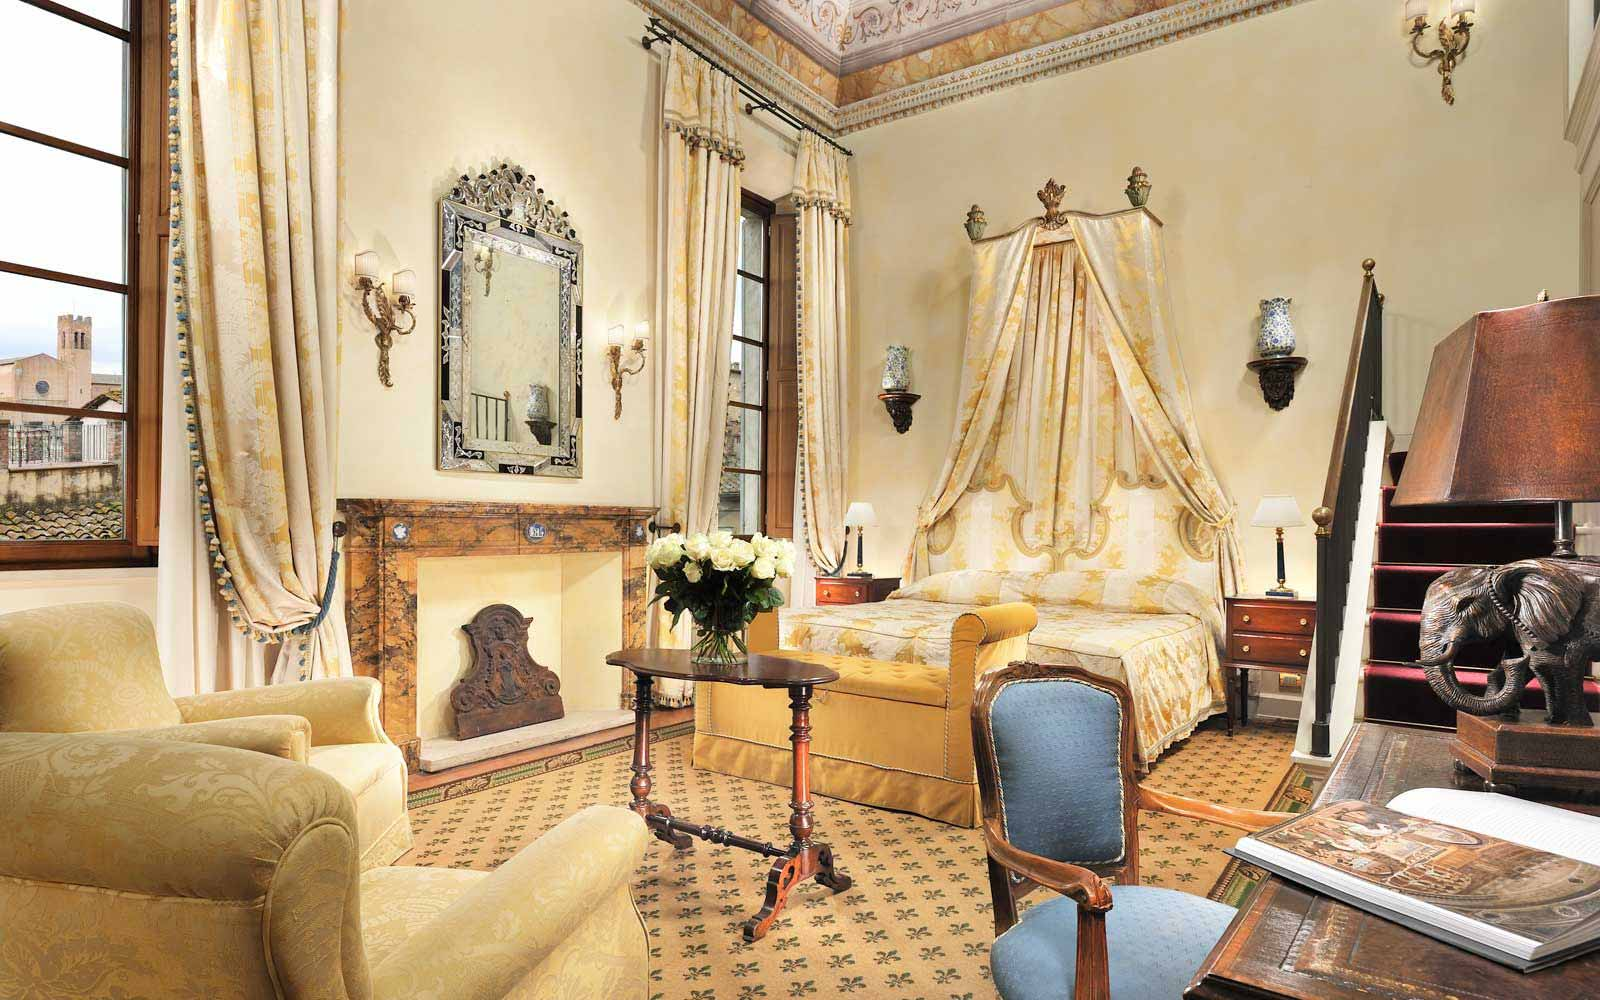 Royal Junior Suite at the Grand Hotel Continental